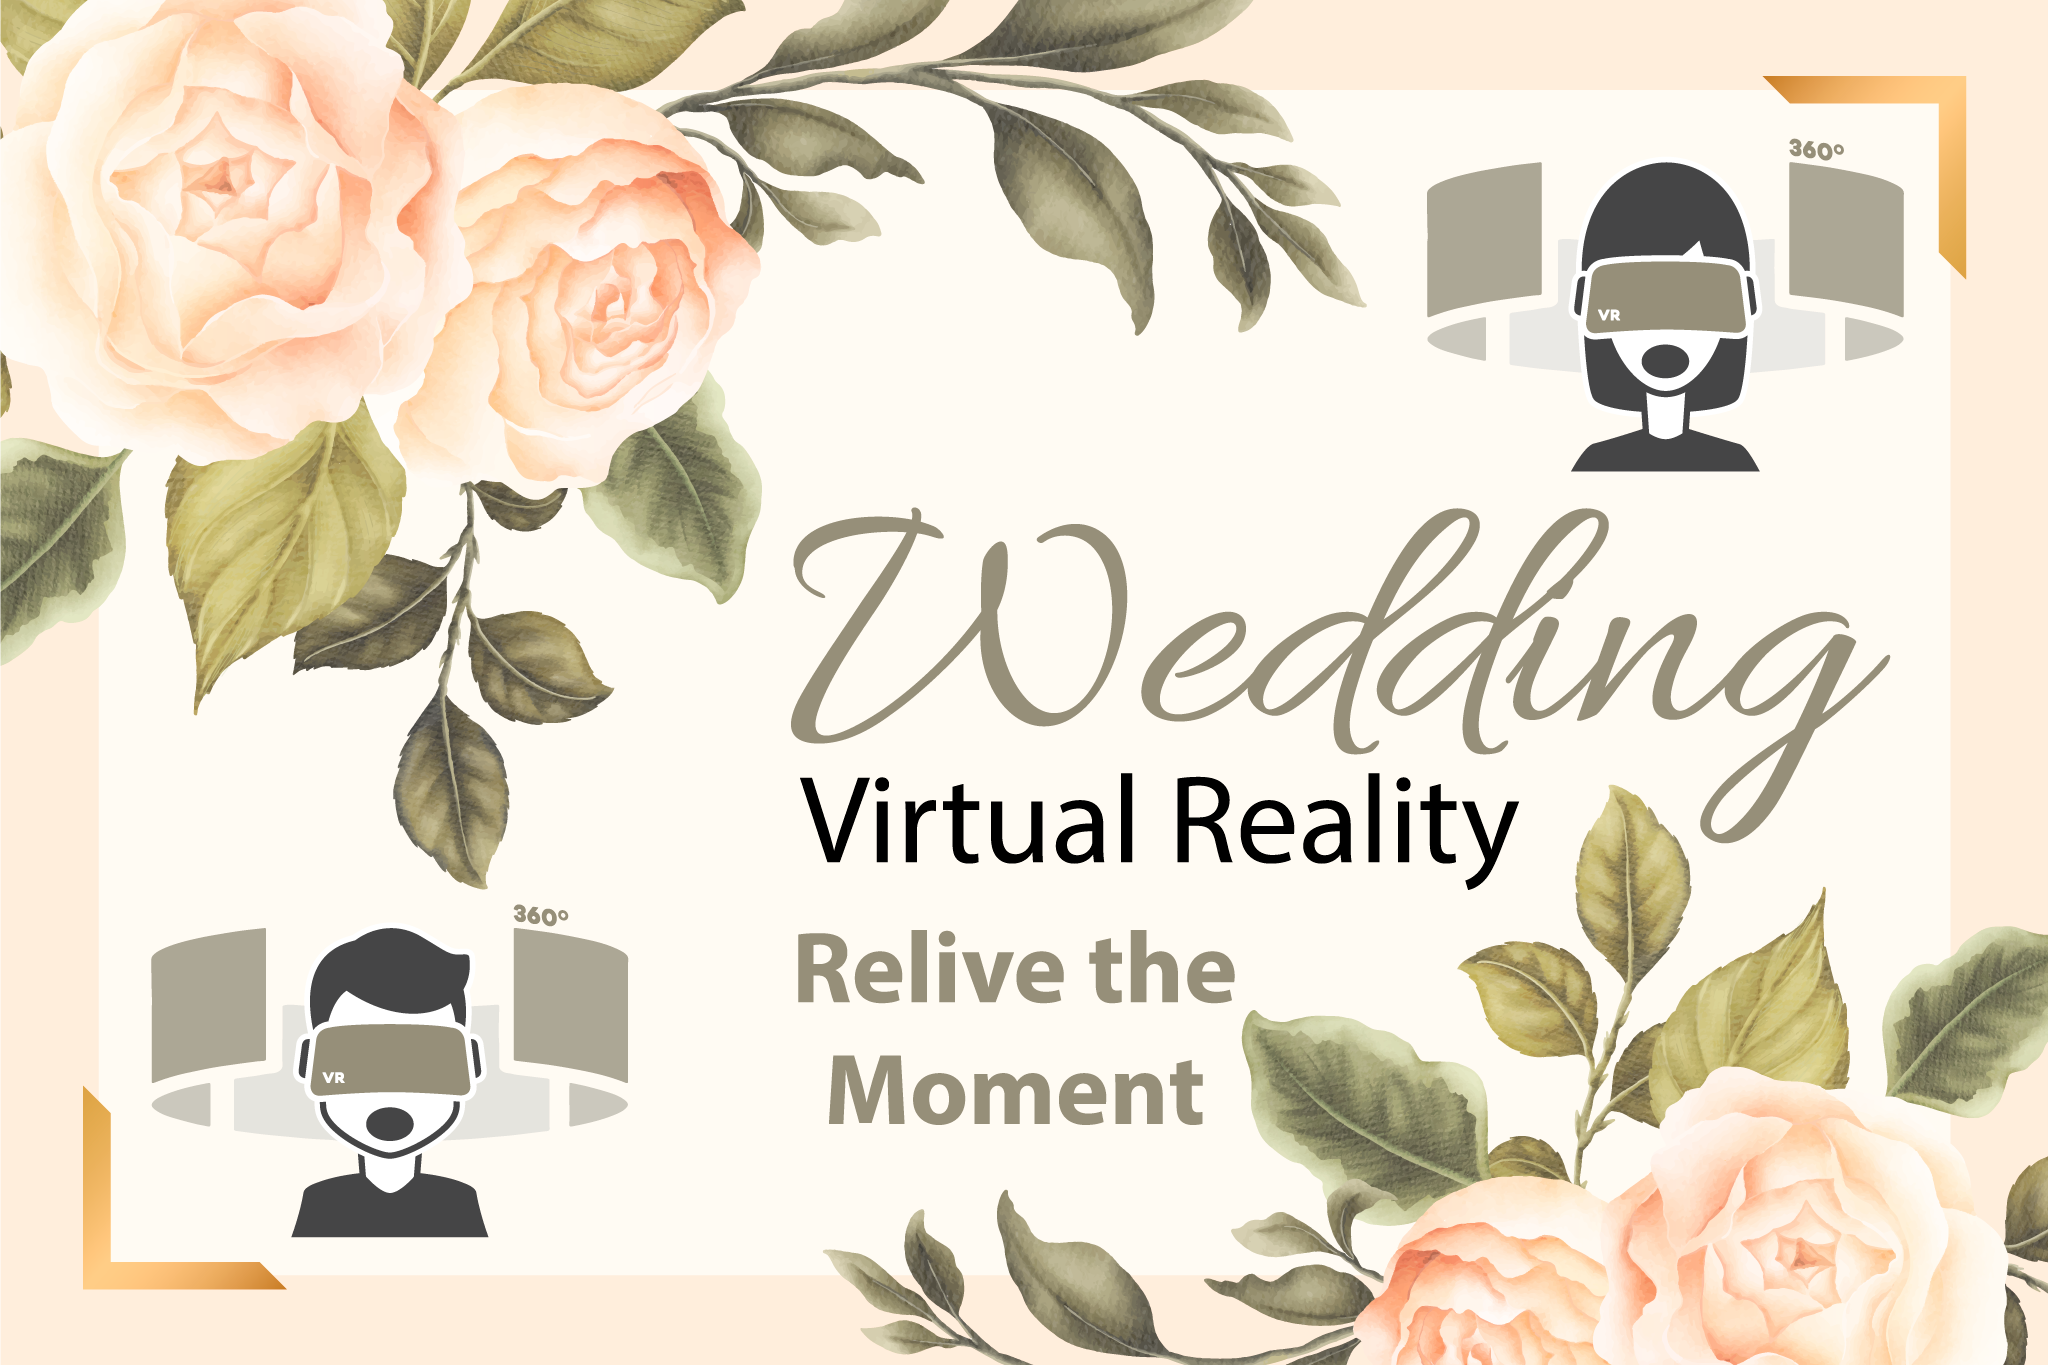 Virtual Reality VR 360 Wedding Videos